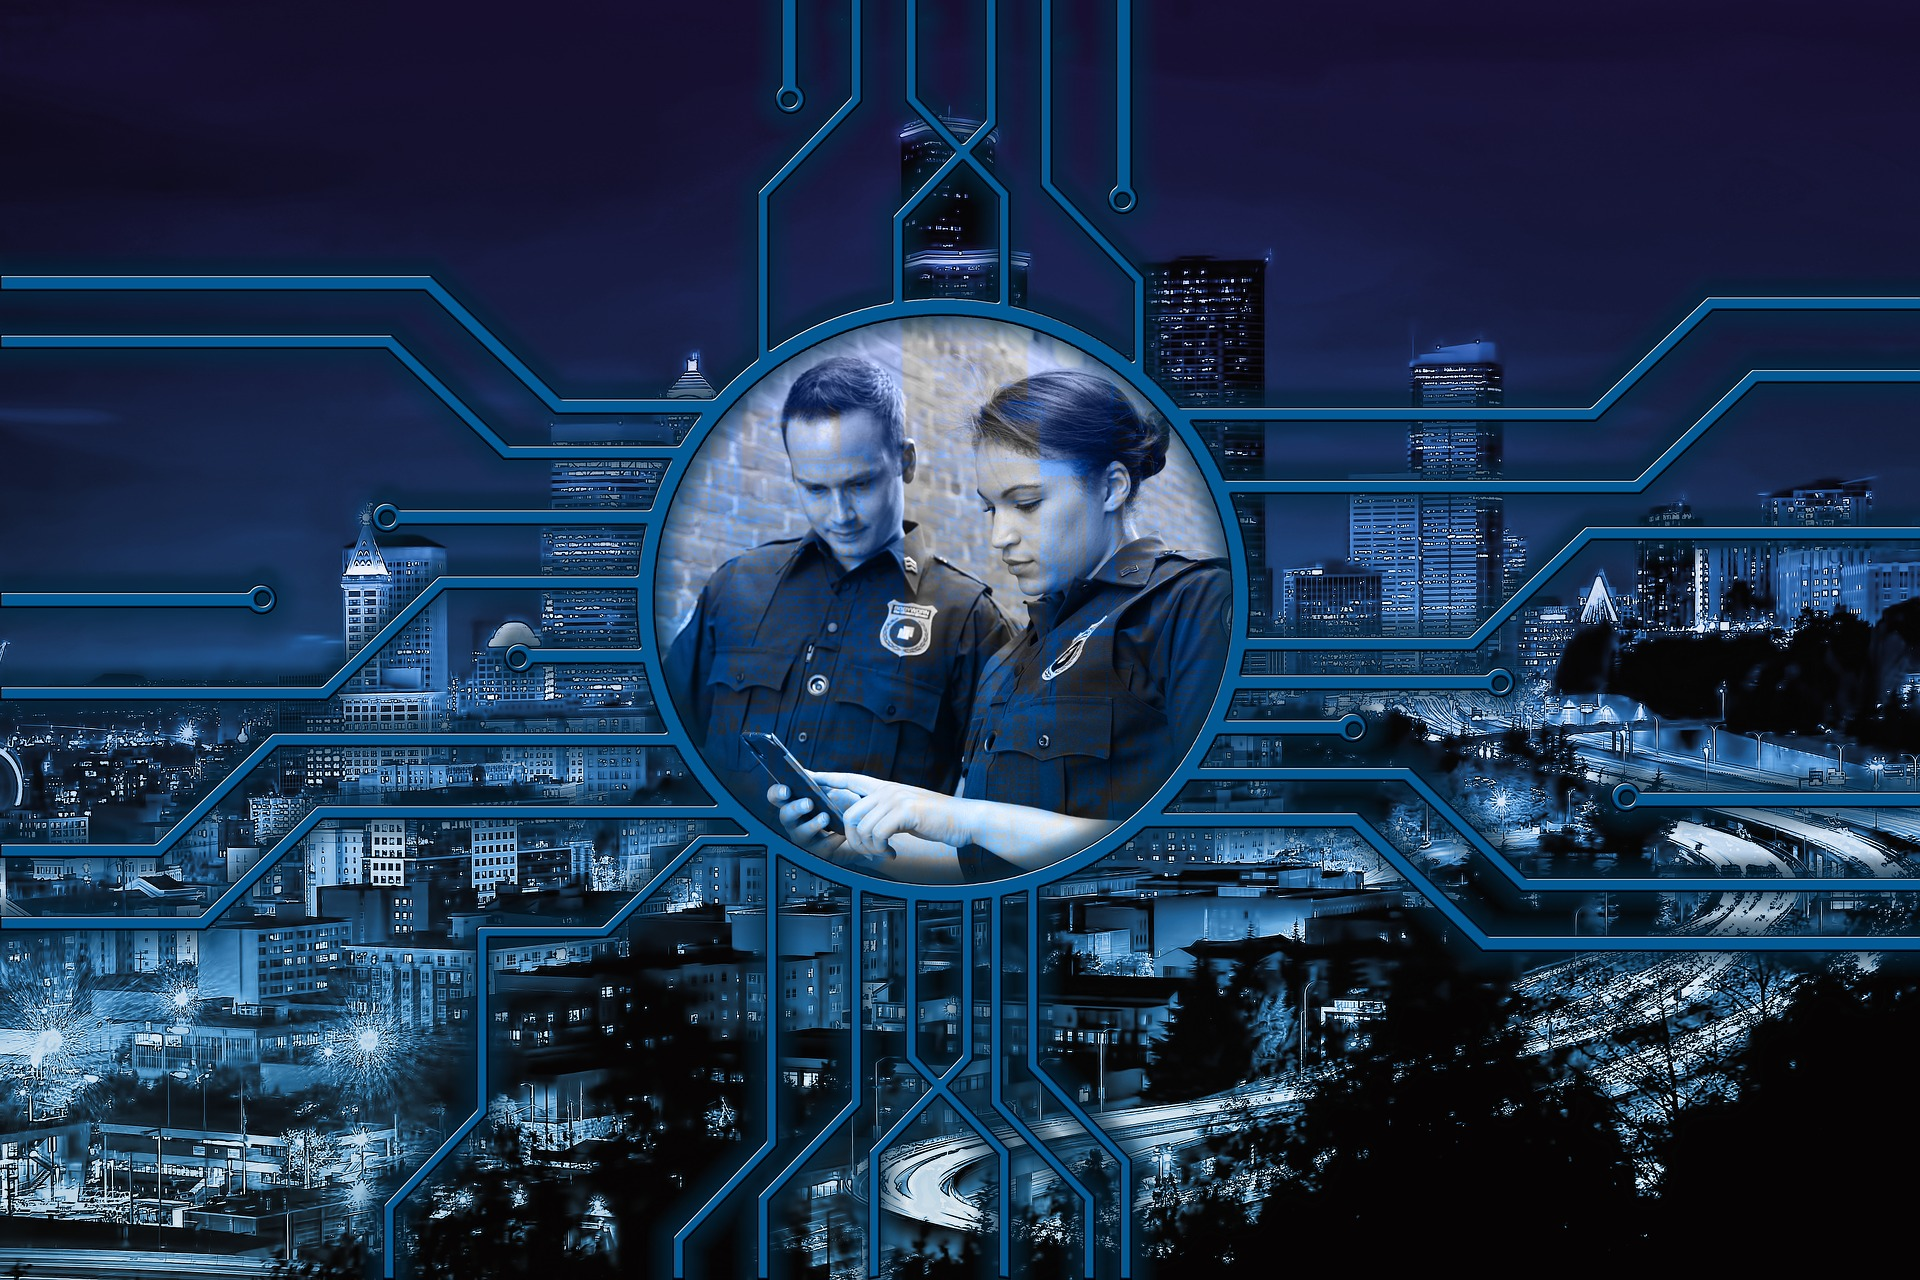 digital drawing of a cityscape with data lines and two officers looking at a cellphone